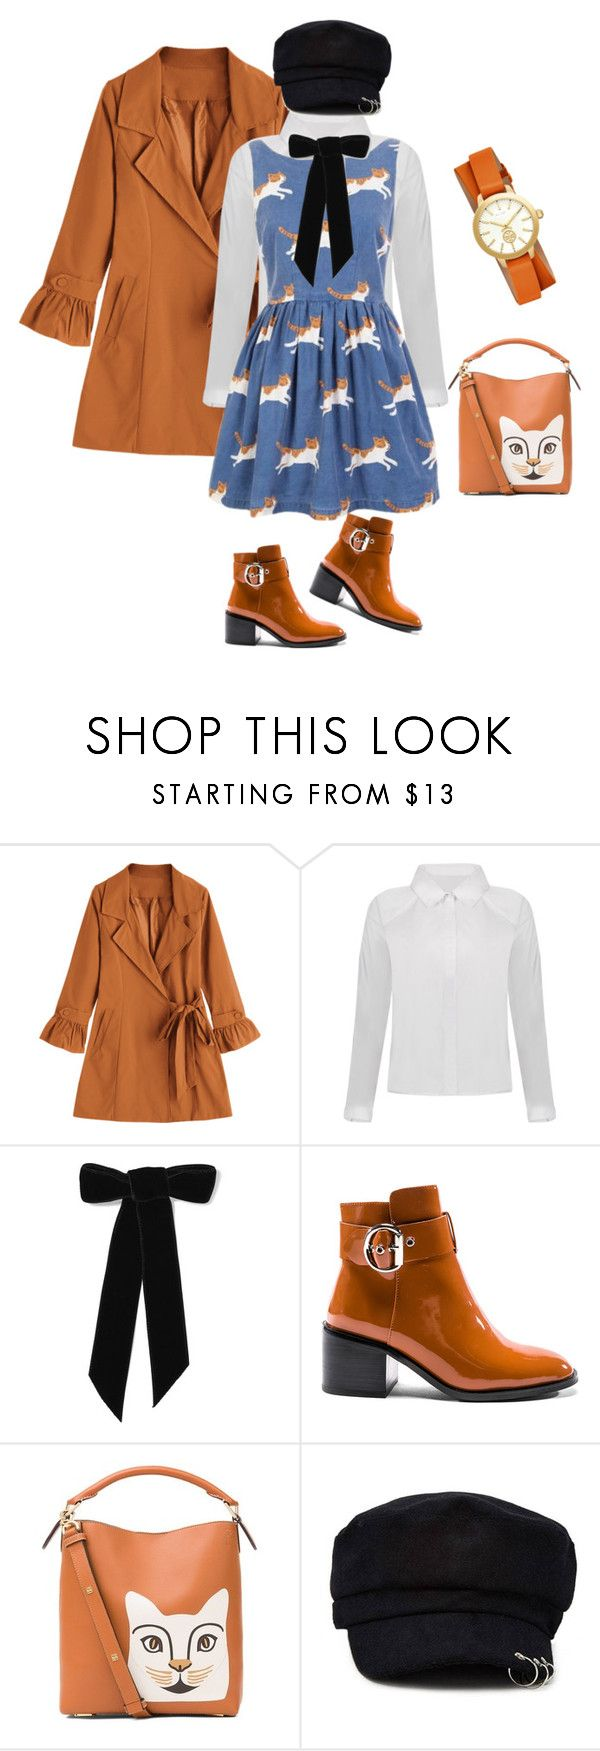 """catwalk"" by frizzgirly ❤ liked on Polyvore featuring Jennifer Behr, Jeffrey Campbell, Loewe, Forever 21 and Tory Burch"